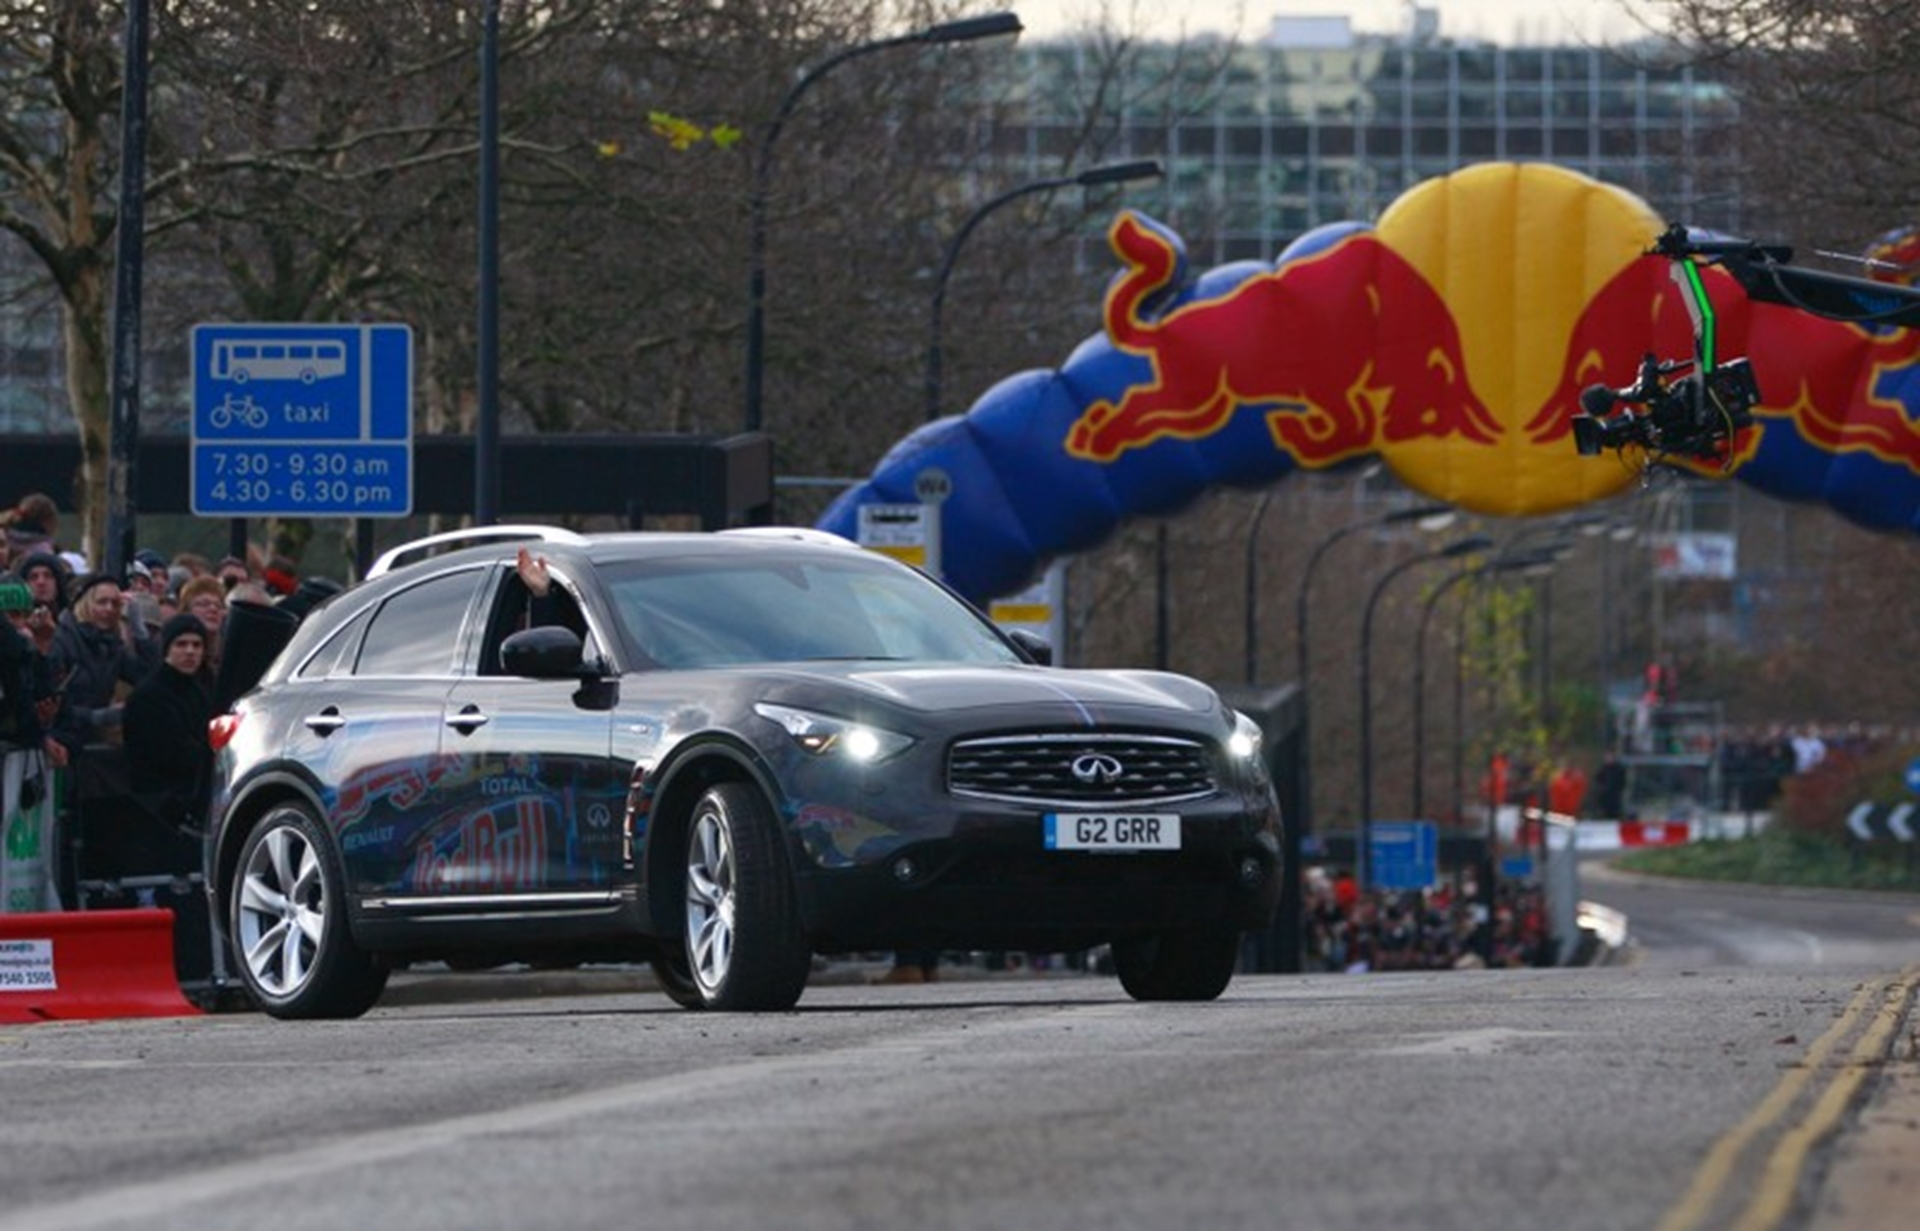 Infiniti and Red Bull Racing took to the city streets